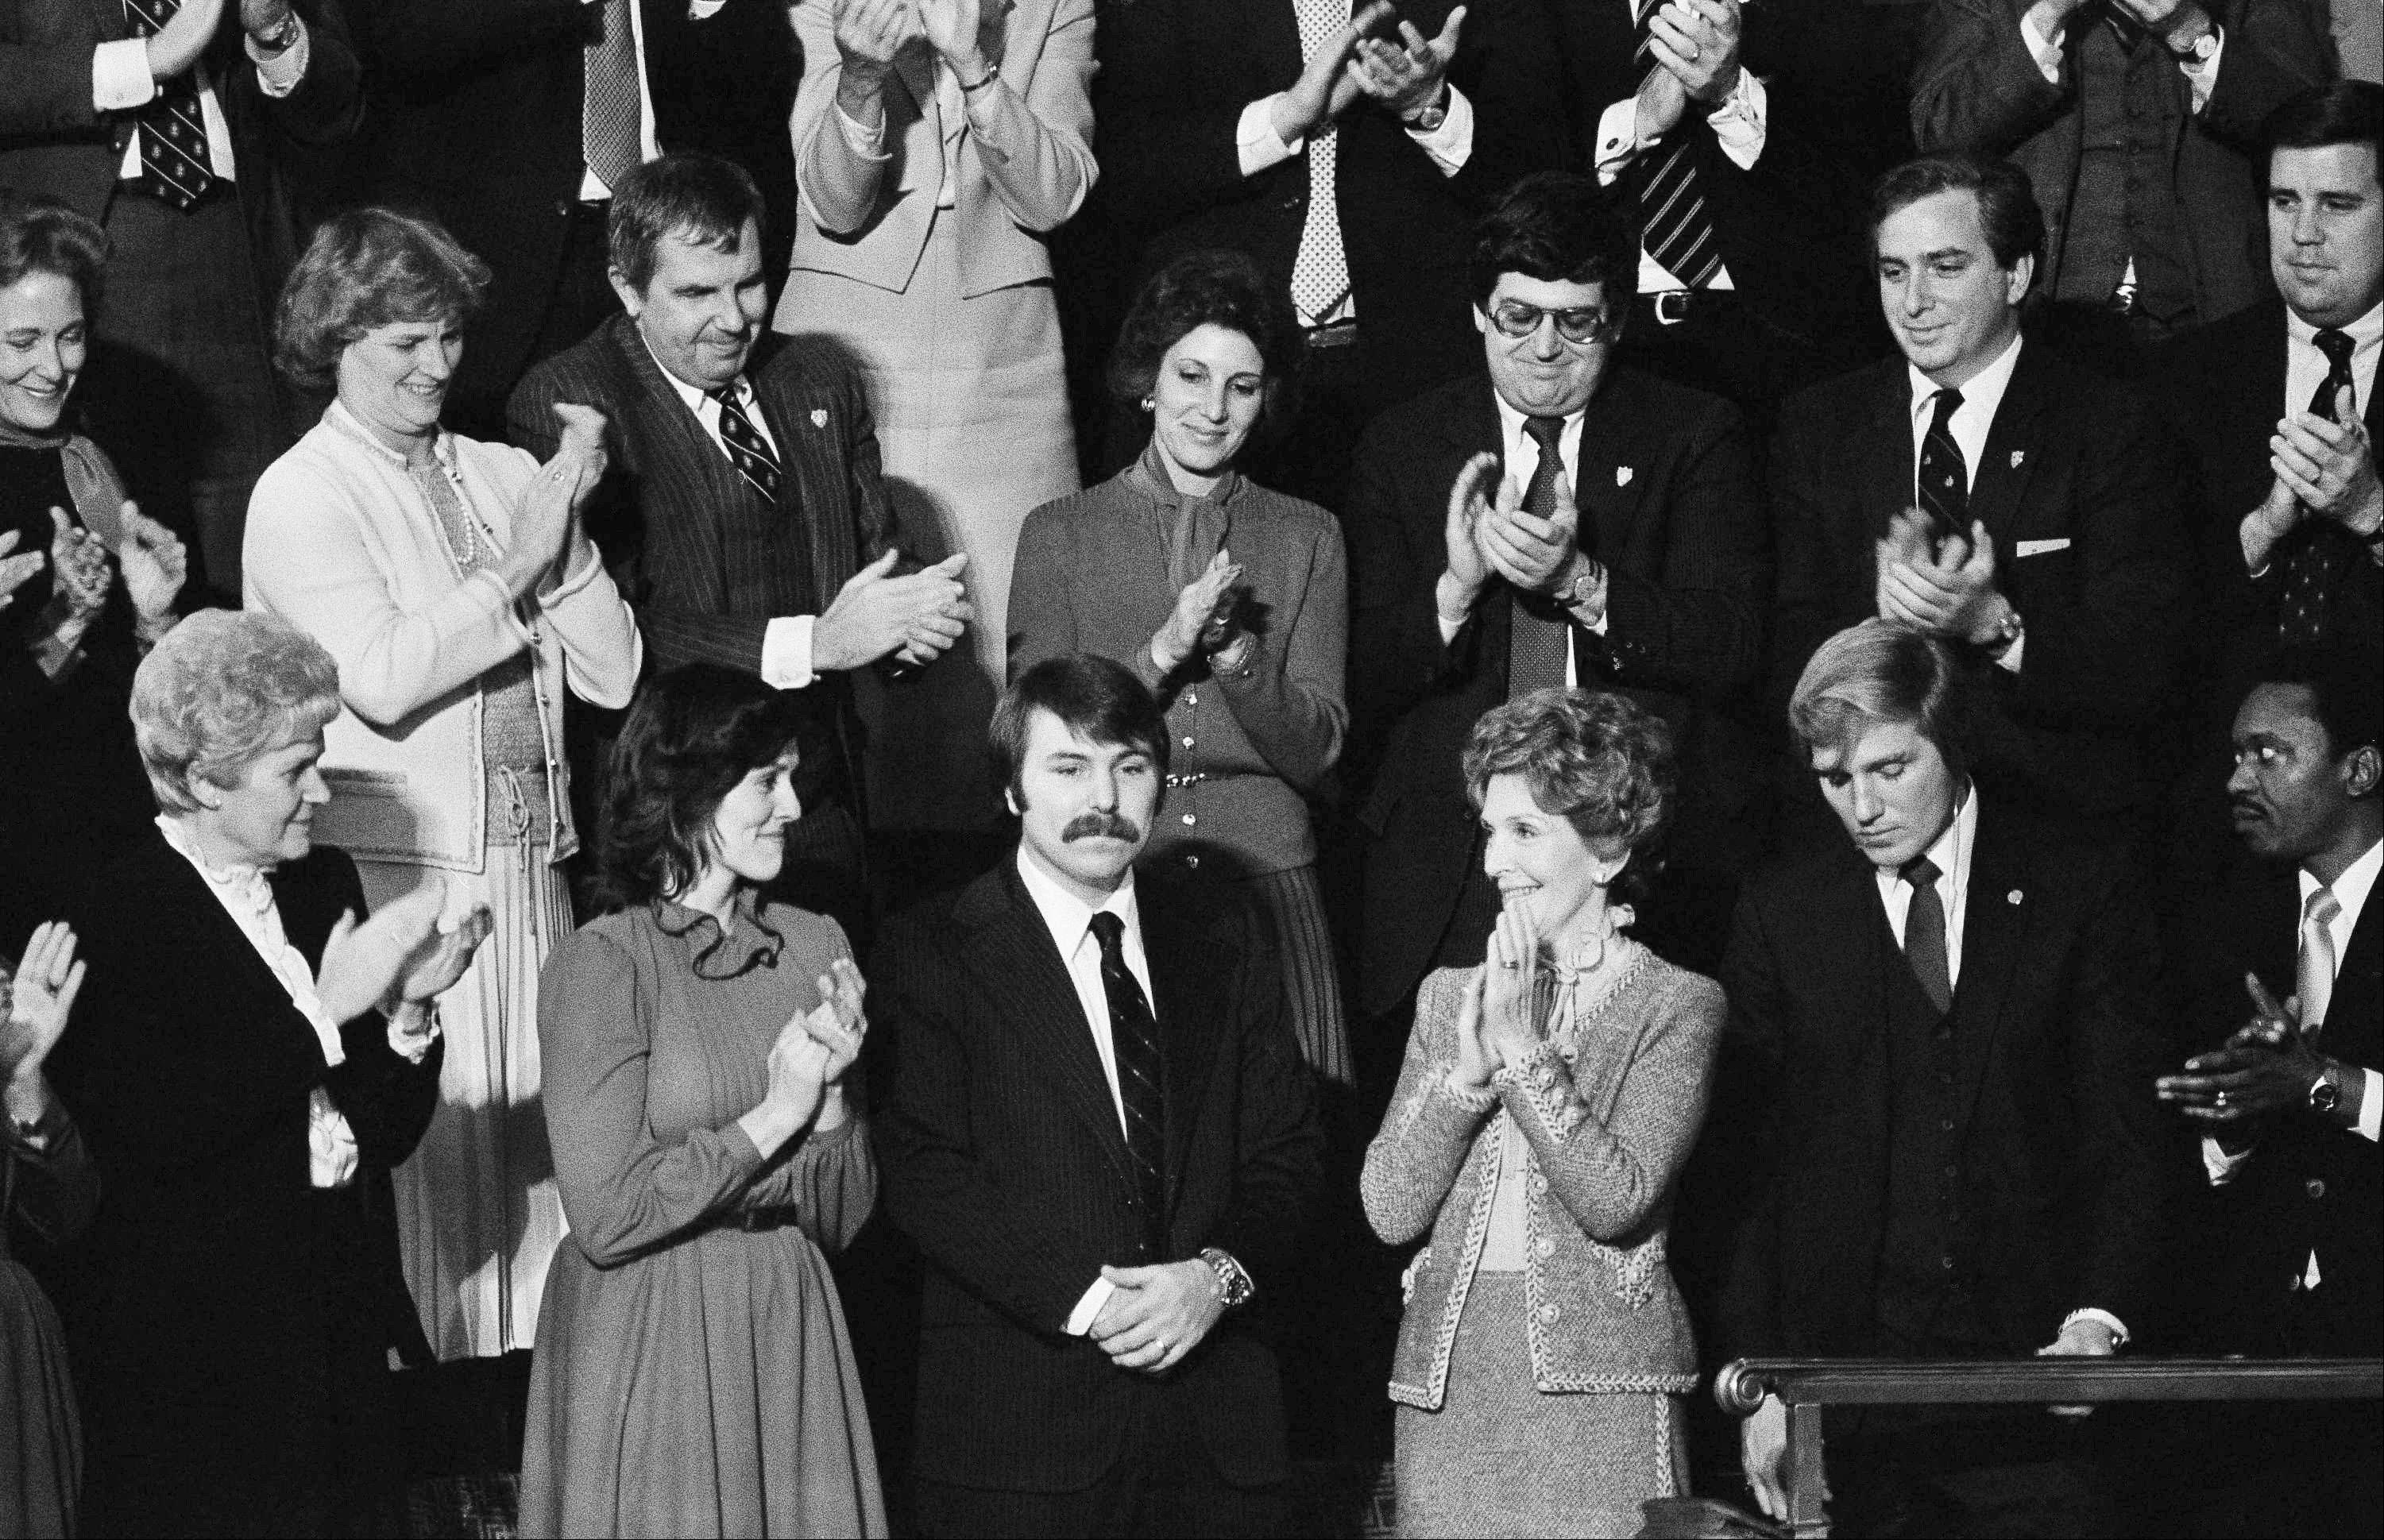 Lennie Skutnik, center front, the man who jumped into the Potomac River and saved one of the passengers aboard the Air Florida jetliner that crashed on Jan. 13, 1983, receives applause from first lady Nancy Reagan and his wife, second from left, after President Ronald Reagan made mention of the event in his State of the Union address Jan. 27, 1982.